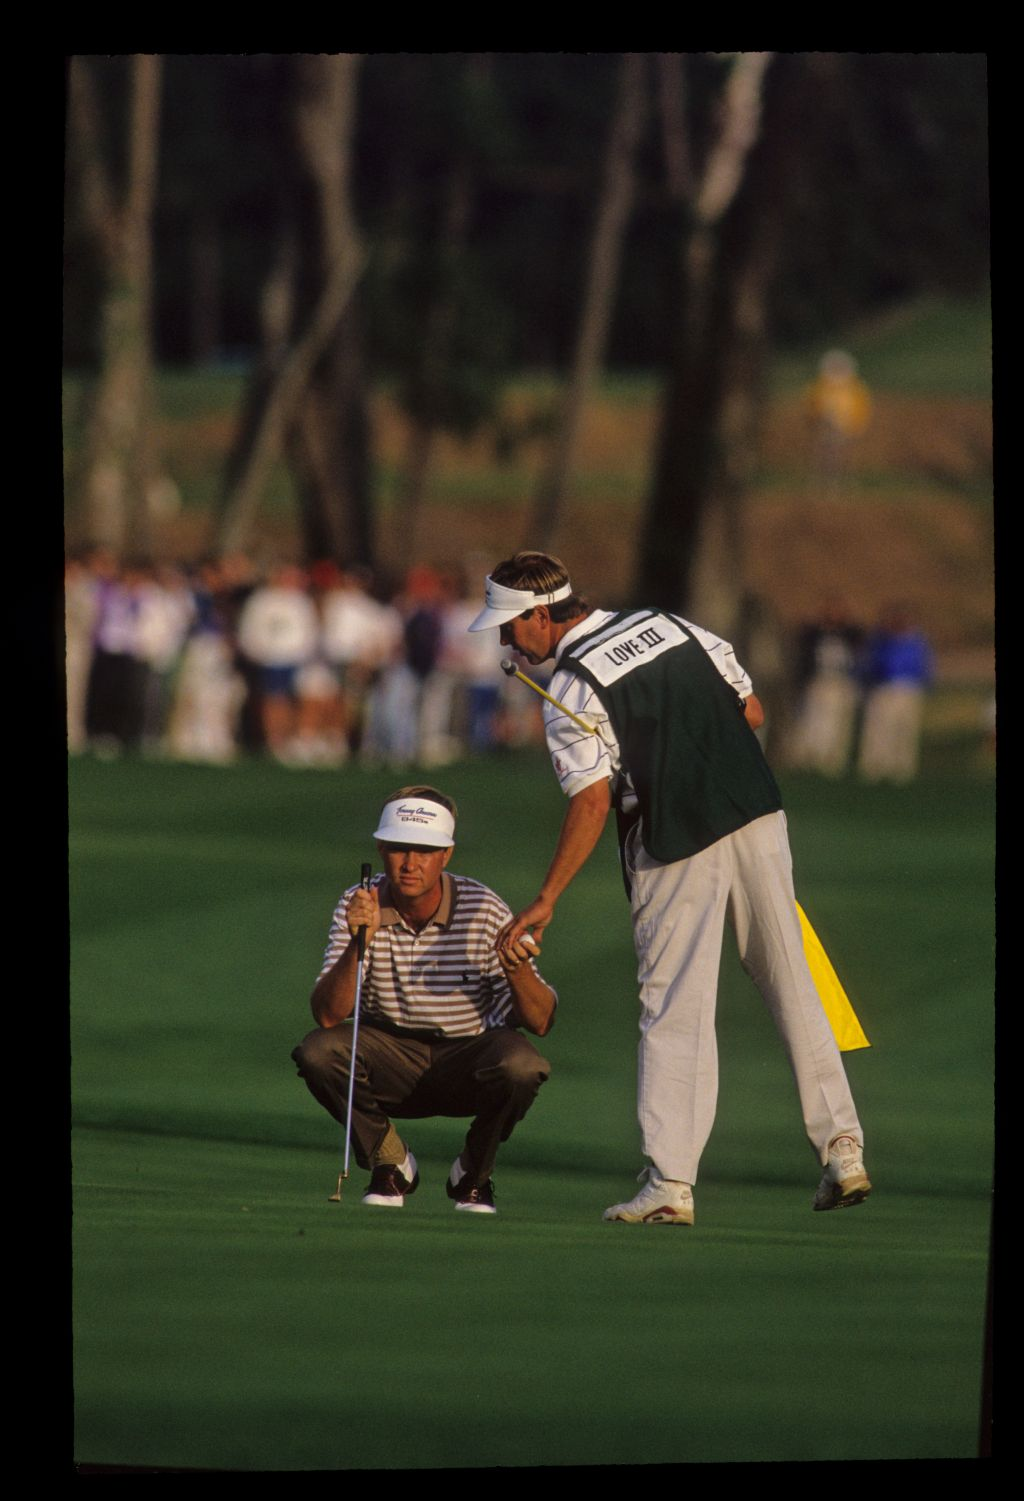 Davis Love III and his caddie lining up a putt on his way to winning the 1992 TPC